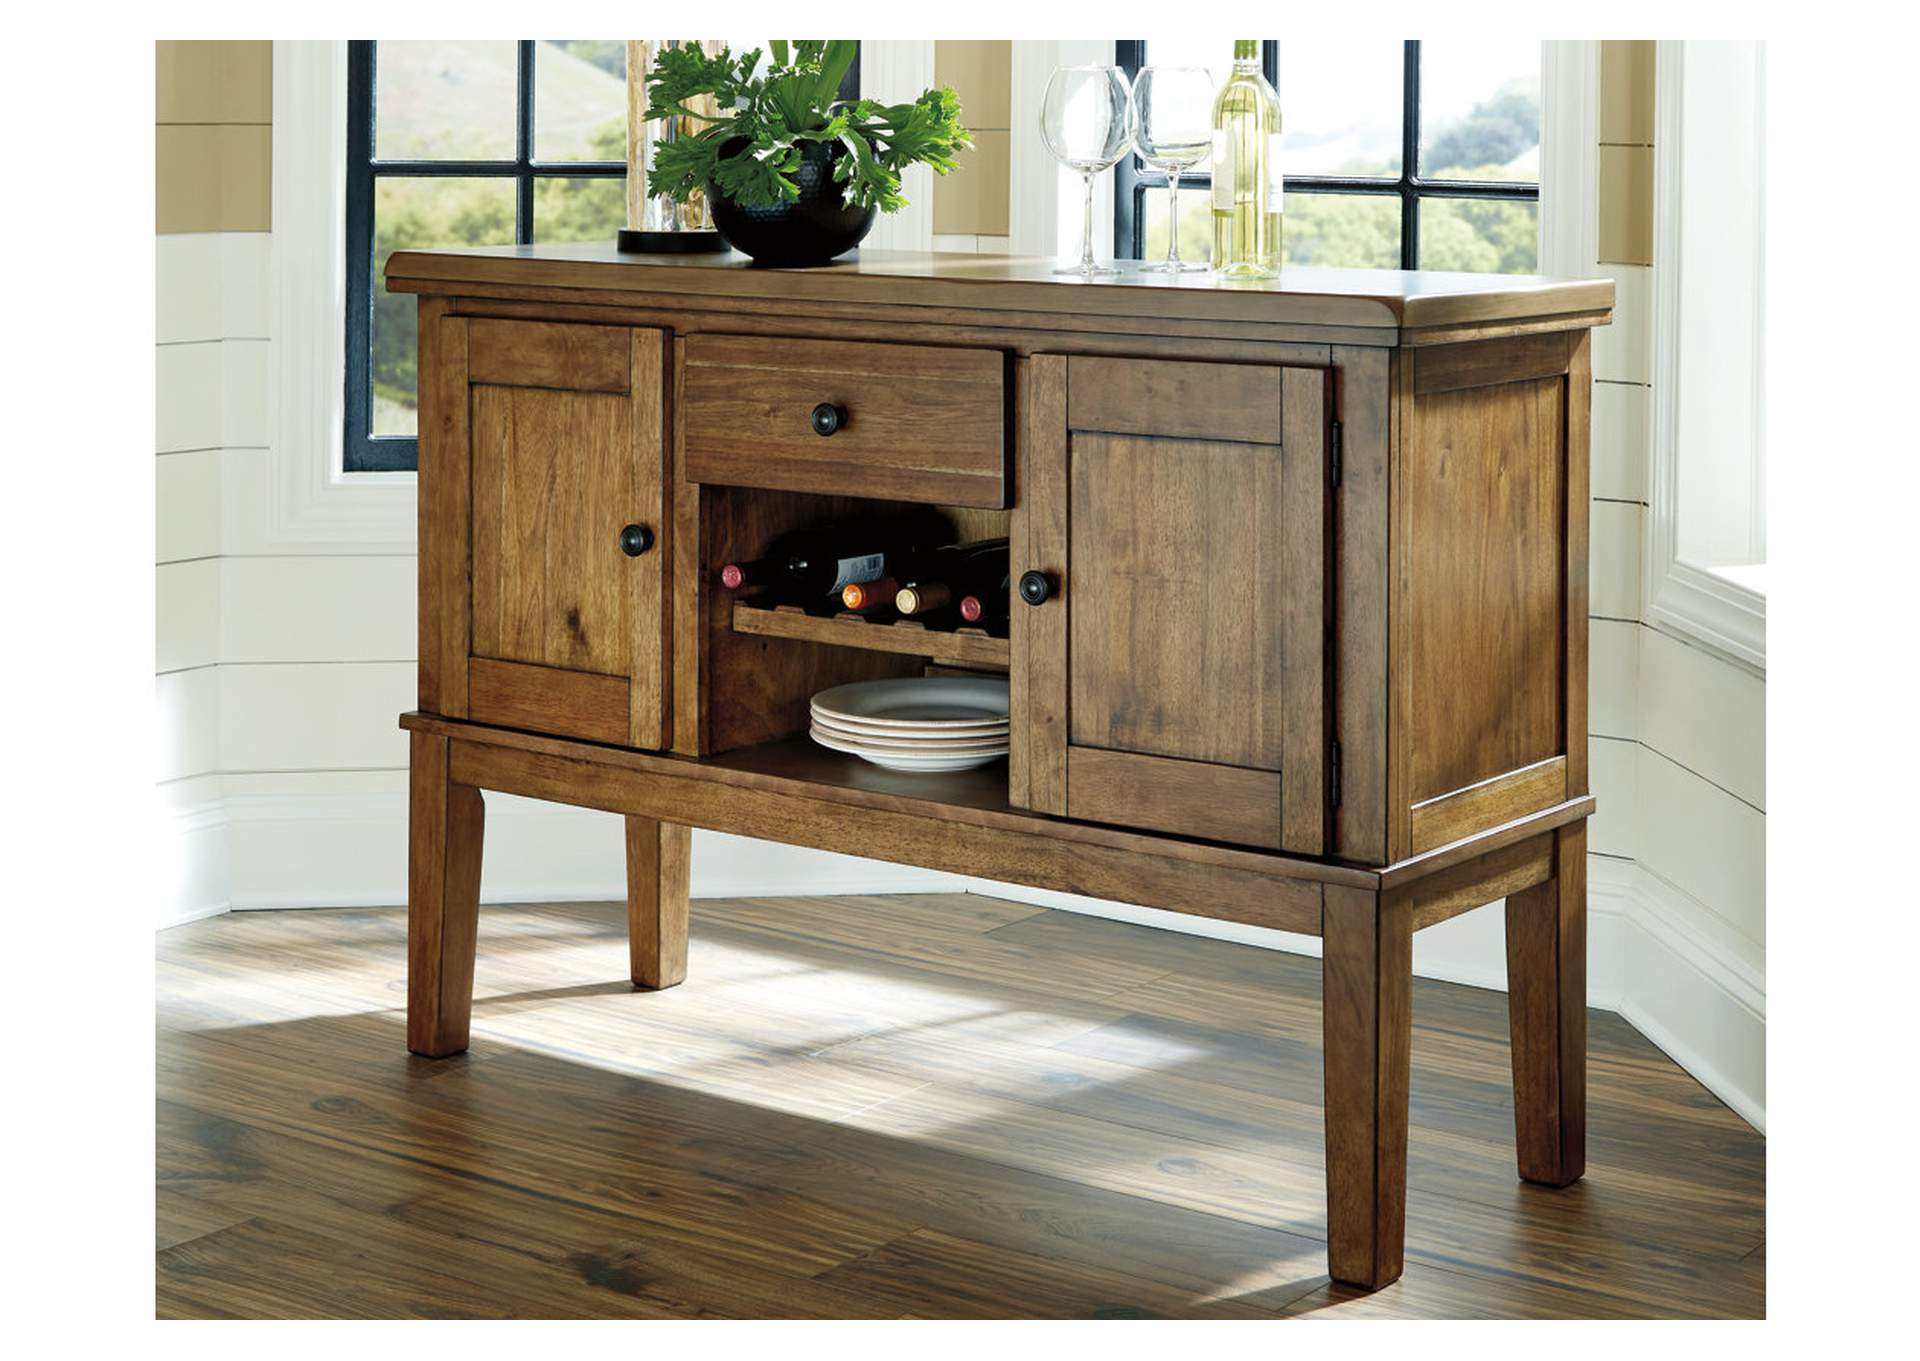 Flaybern Brown Dining Room Server,Benchcraft